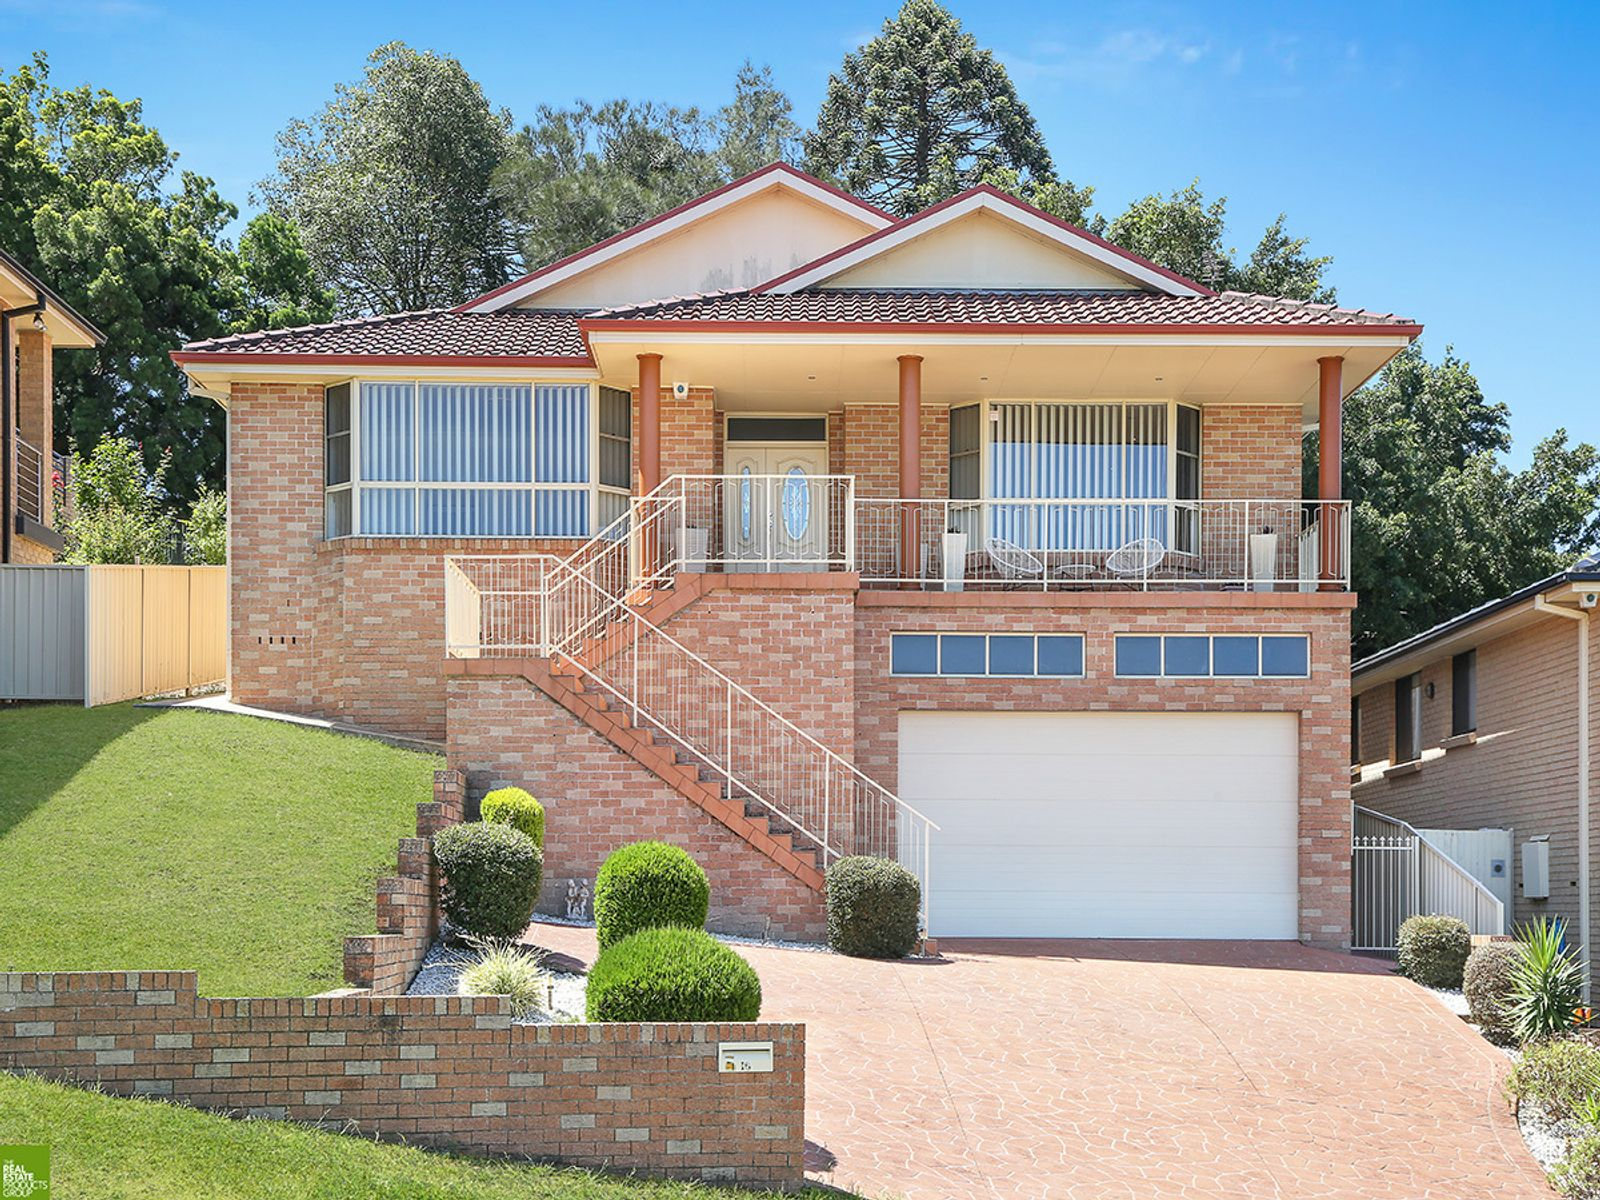 16 Sorensen Drive, Figtree, NSW 2525